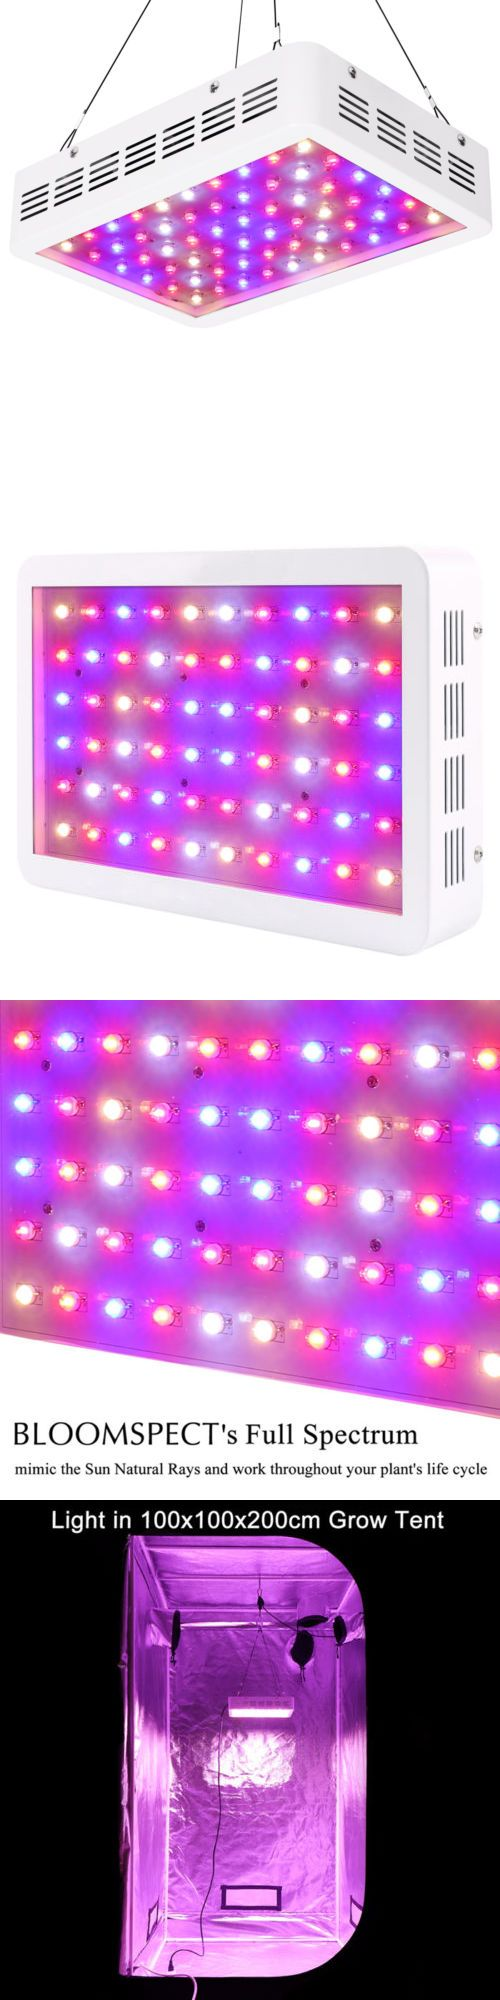 Grow Light Kits 178989 Bloomspect 300w Led Grow Light Full Spectrum For Indoor Plant Veg And Flower Buy It Now On Led Grow Lights Grow Lights Indoor Plants